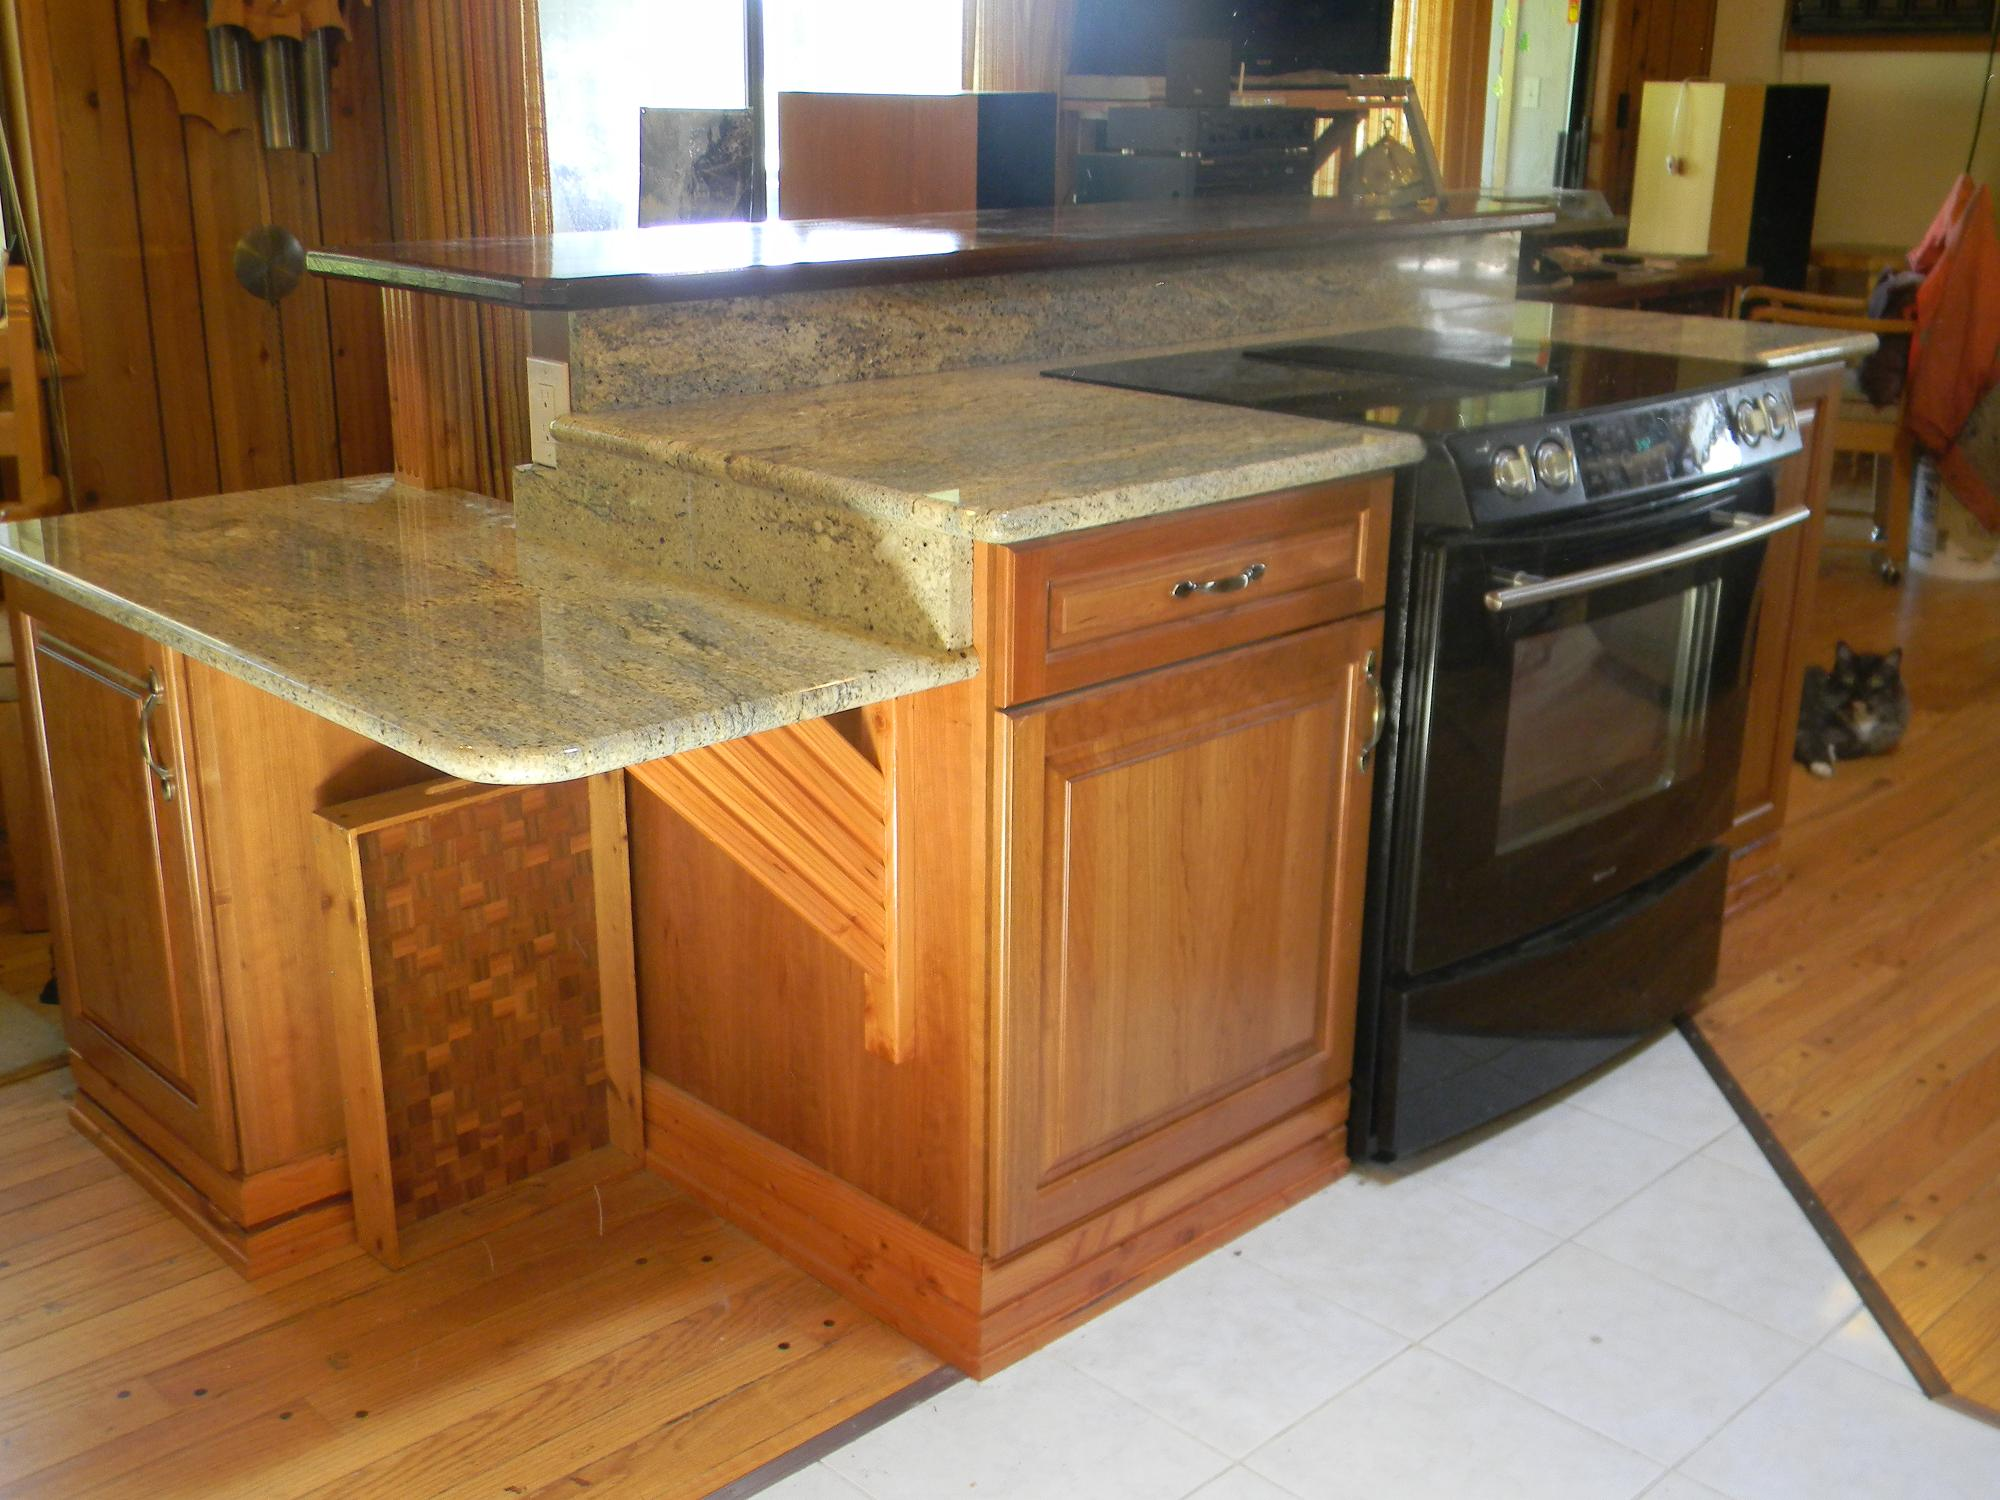 Accessible kitchenswheelchair kitchen design handicapped for How to find handicap accessible housing